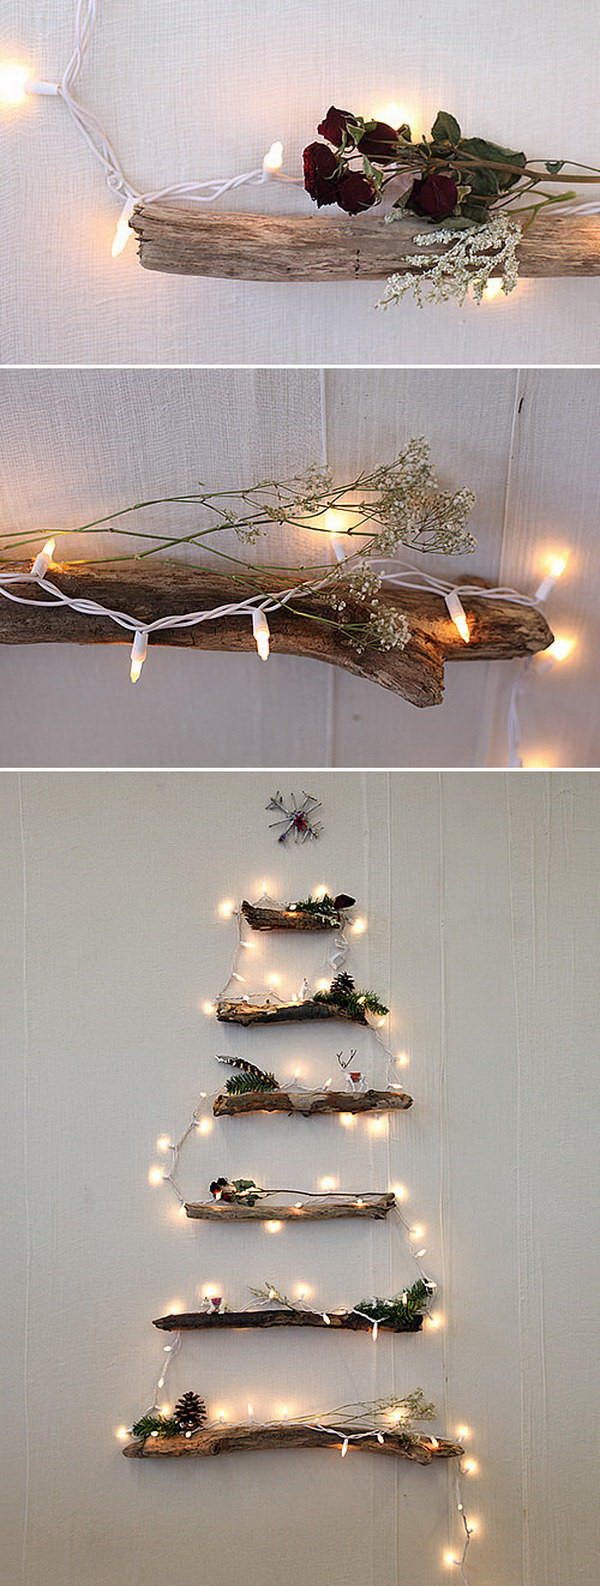 Diy Christmas String Lights : 25 Sparkling Christmas Lighting Decoration Ideas: DIY projects and Ideas to Light Up your Home ...